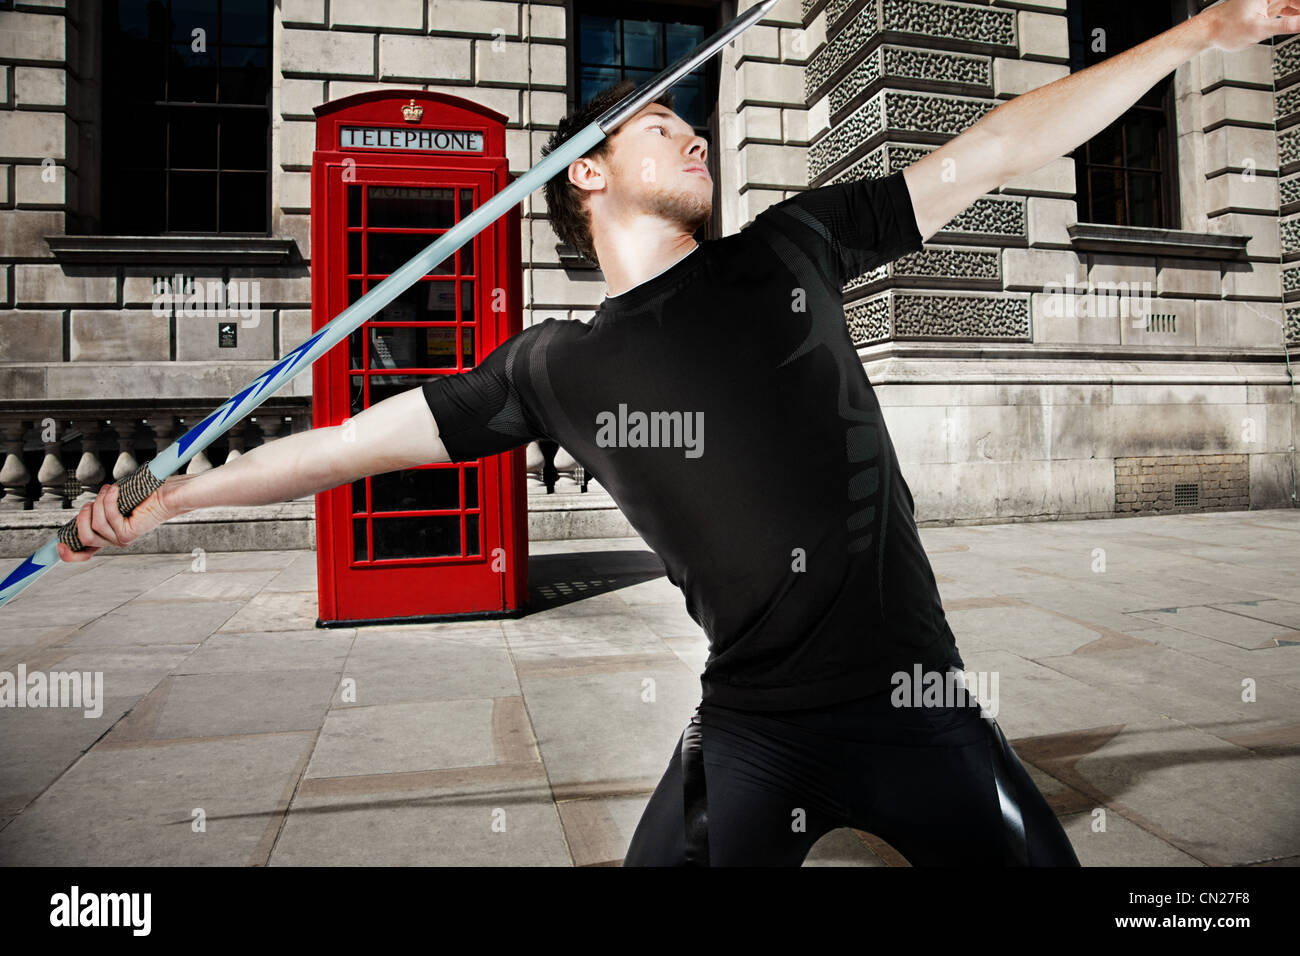 Javelin thrower with red telephone box in background - Stock Image